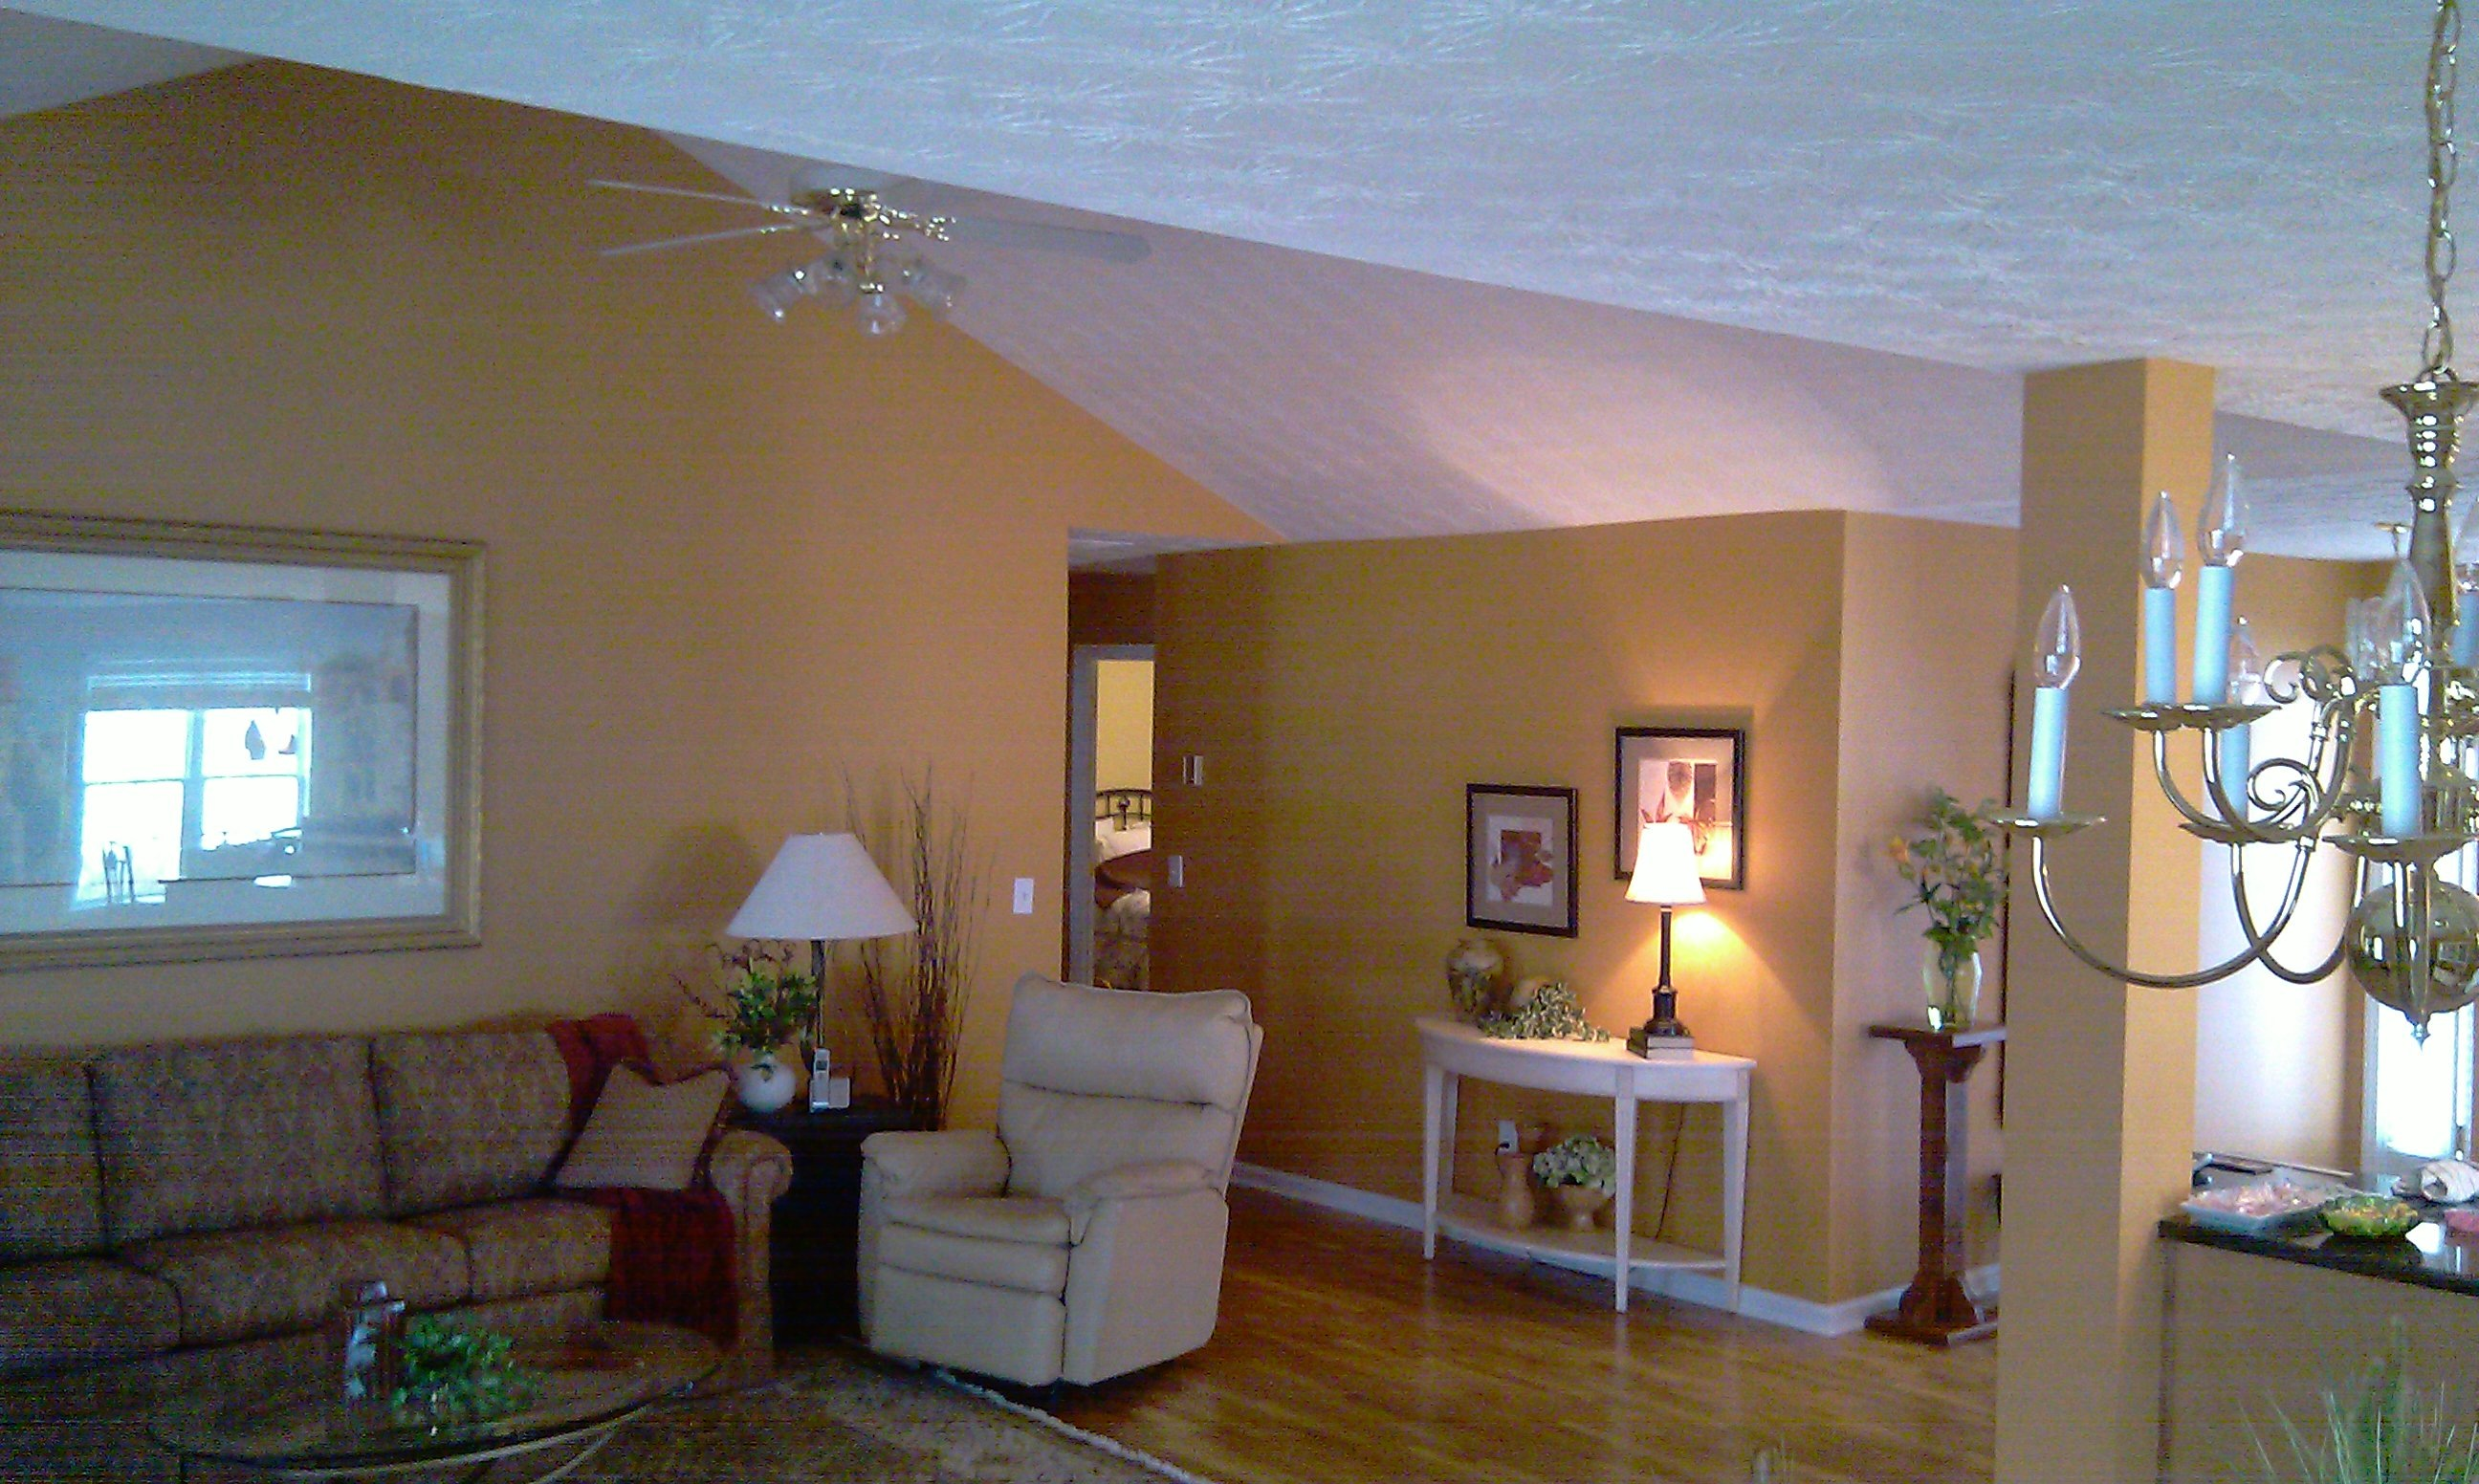 Interior Paint Job Makes Home Cozy Painting By Milan